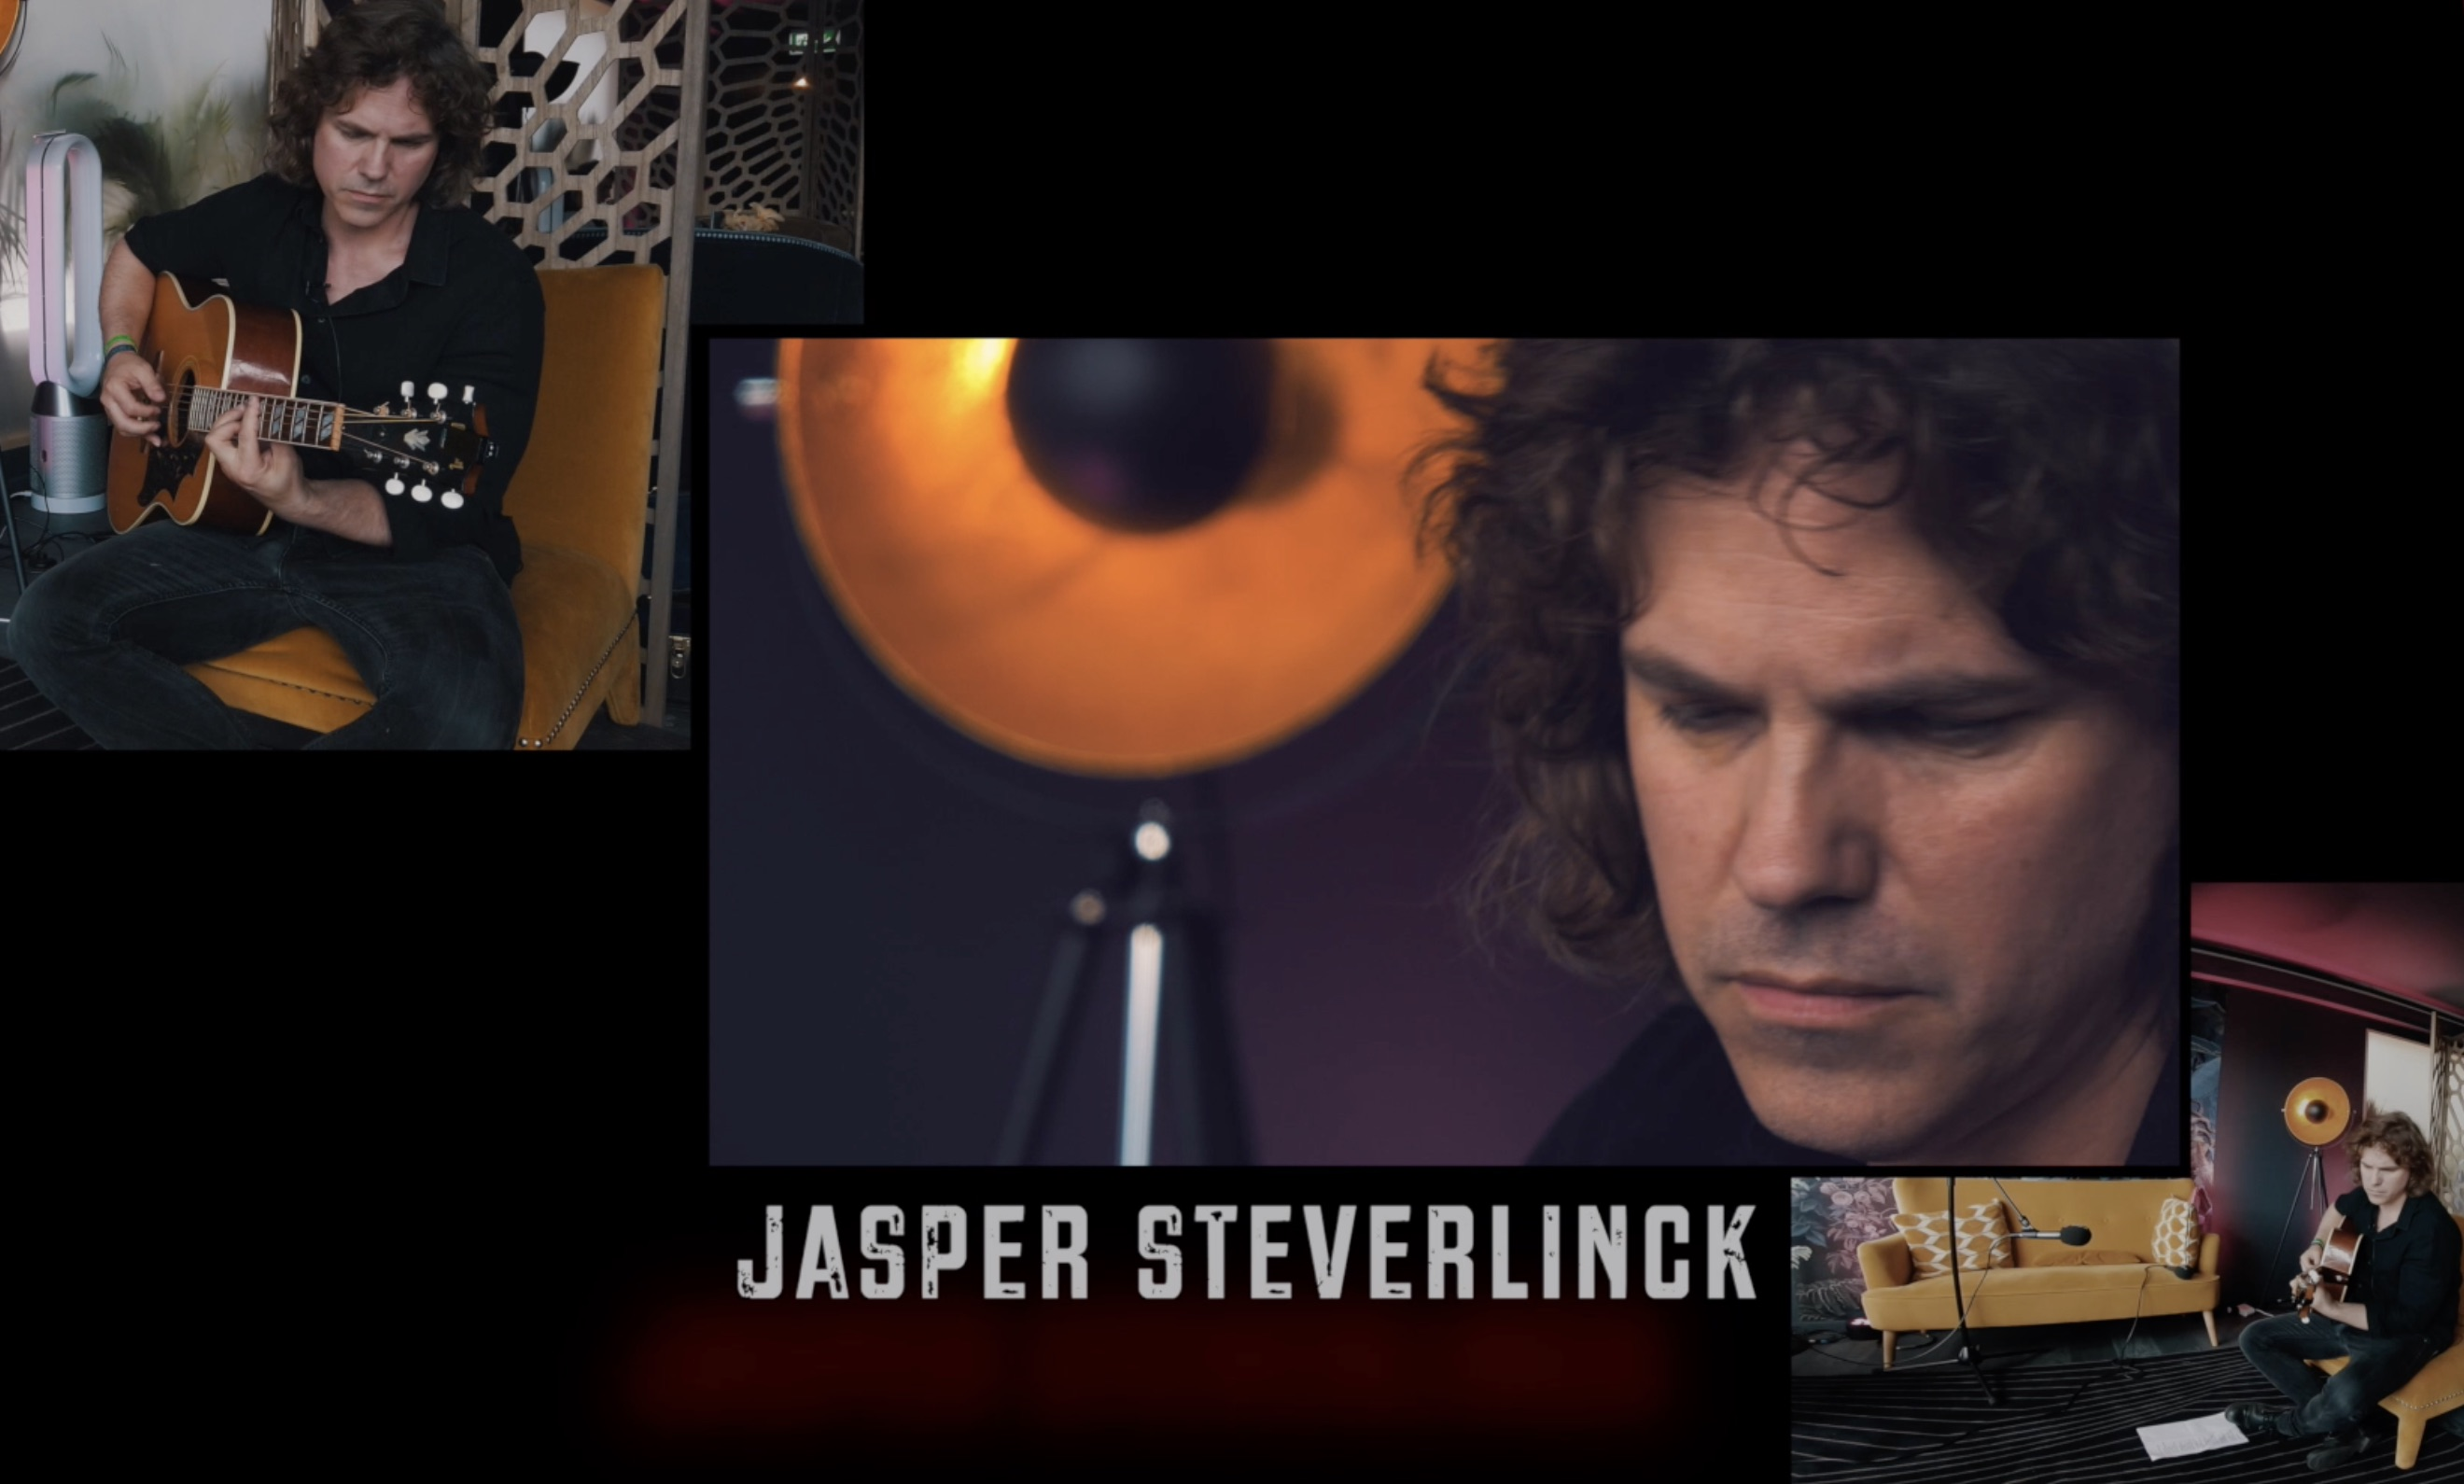 Jasper Steverlinck en exclusivité!